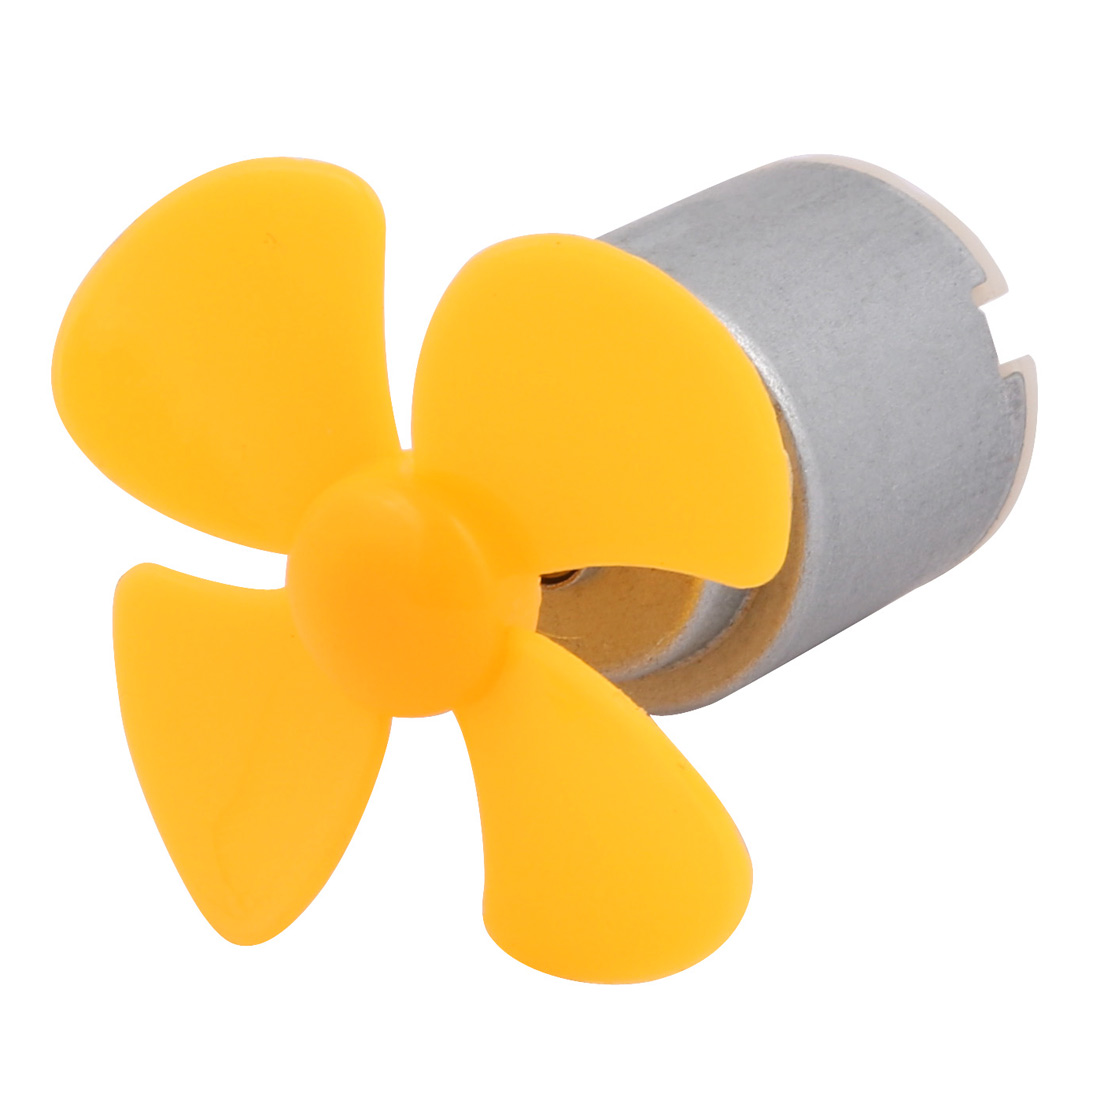 DC 3V 9000RPM High Torque Motor 4 Vanes 40mm Dia Aircraft DIY Propeller Yellow